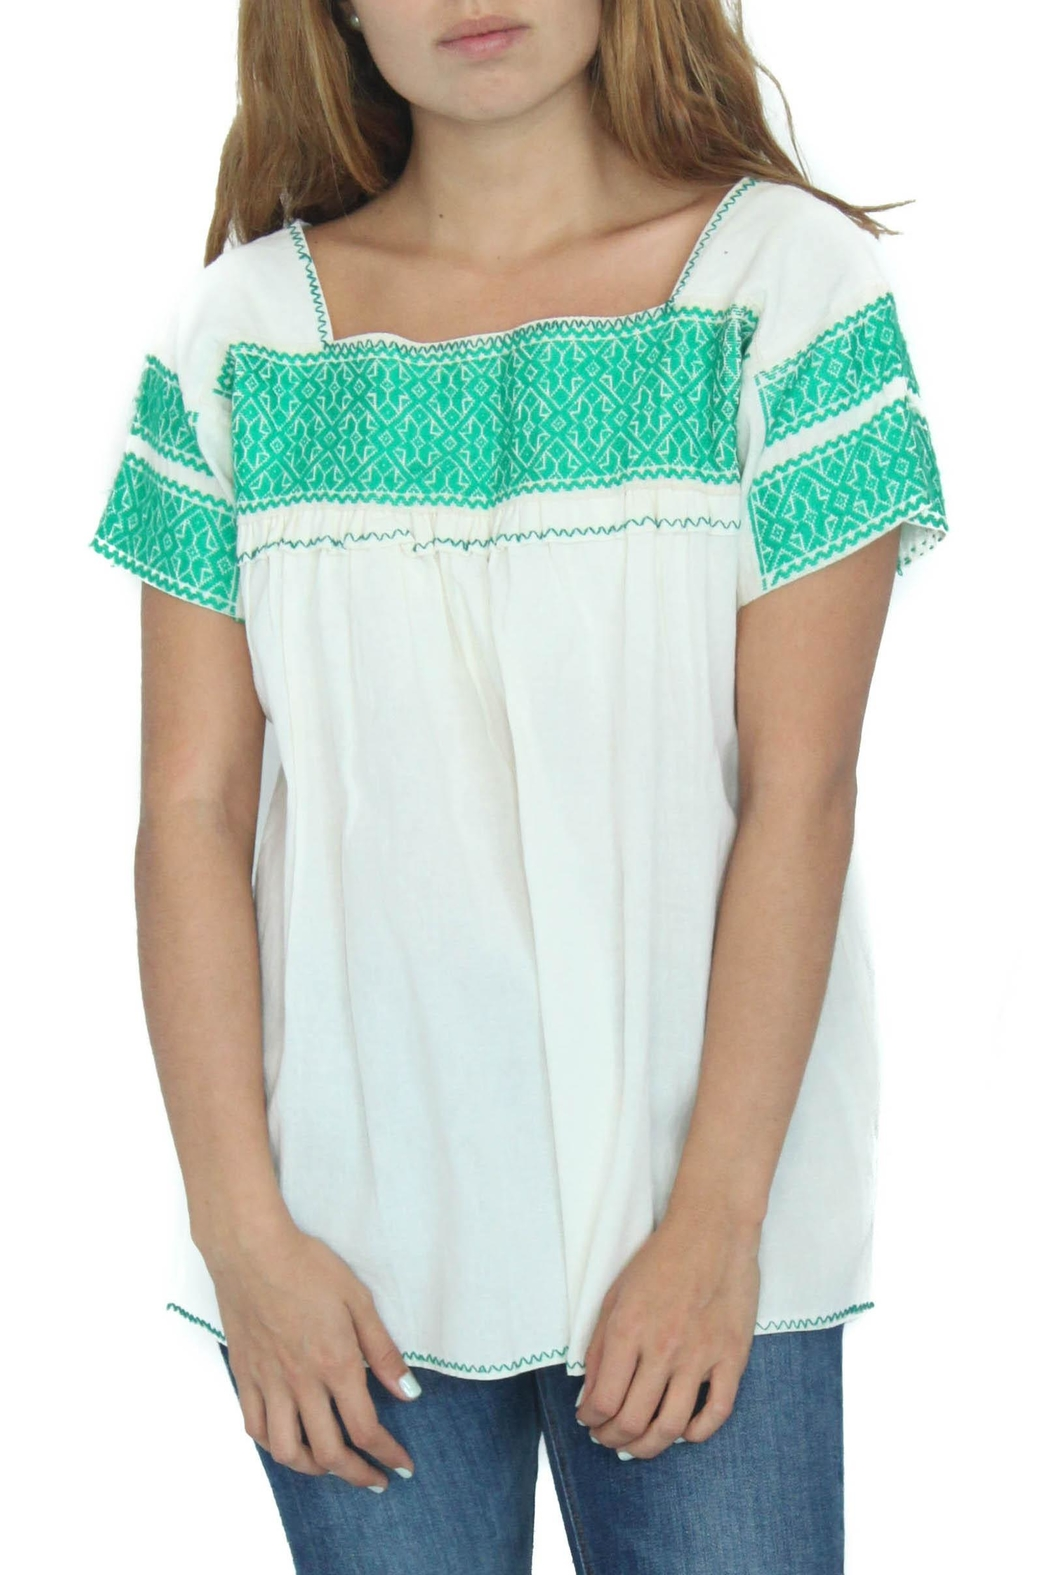 Eclectic Array Blusa Verde Top - Main Image